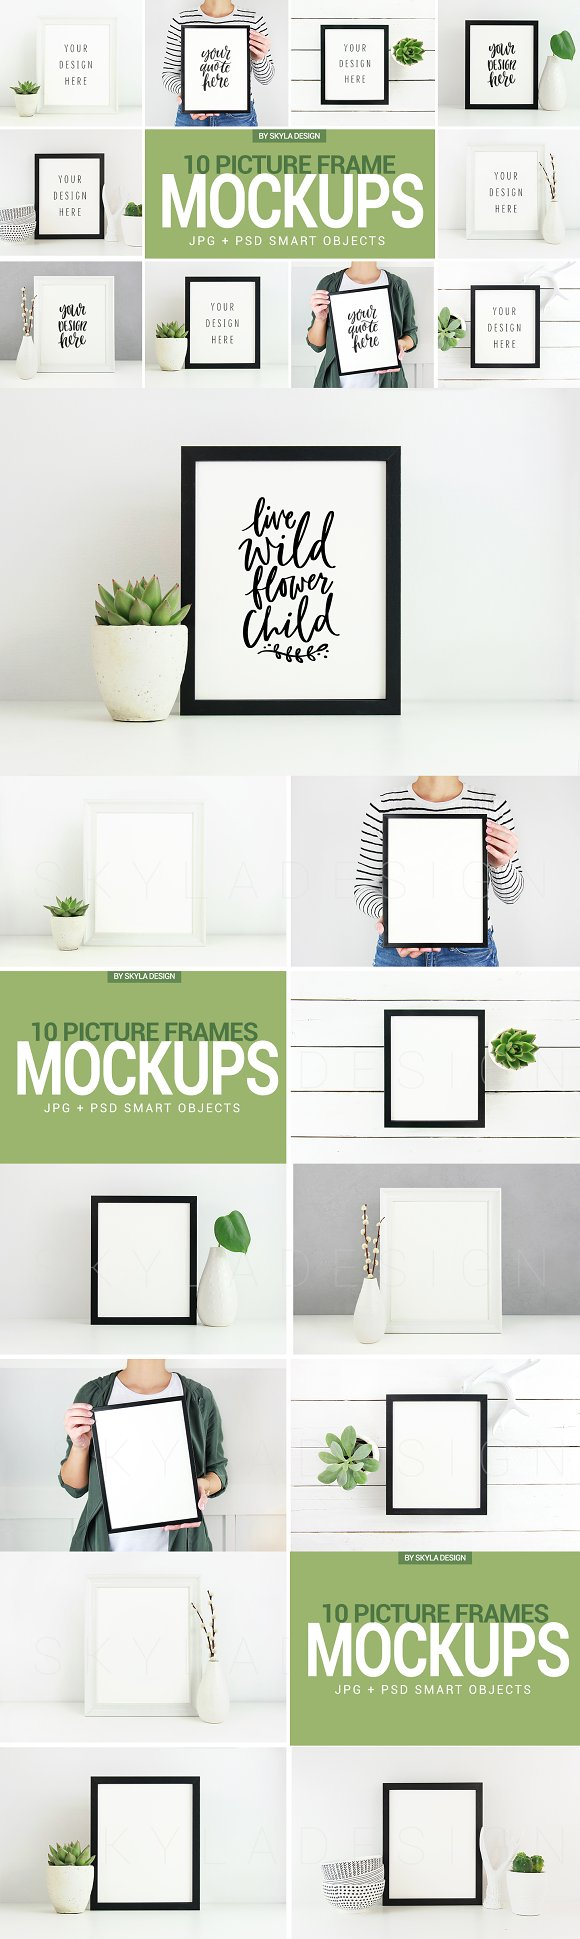 Poster Picture Frame Mockup Photos